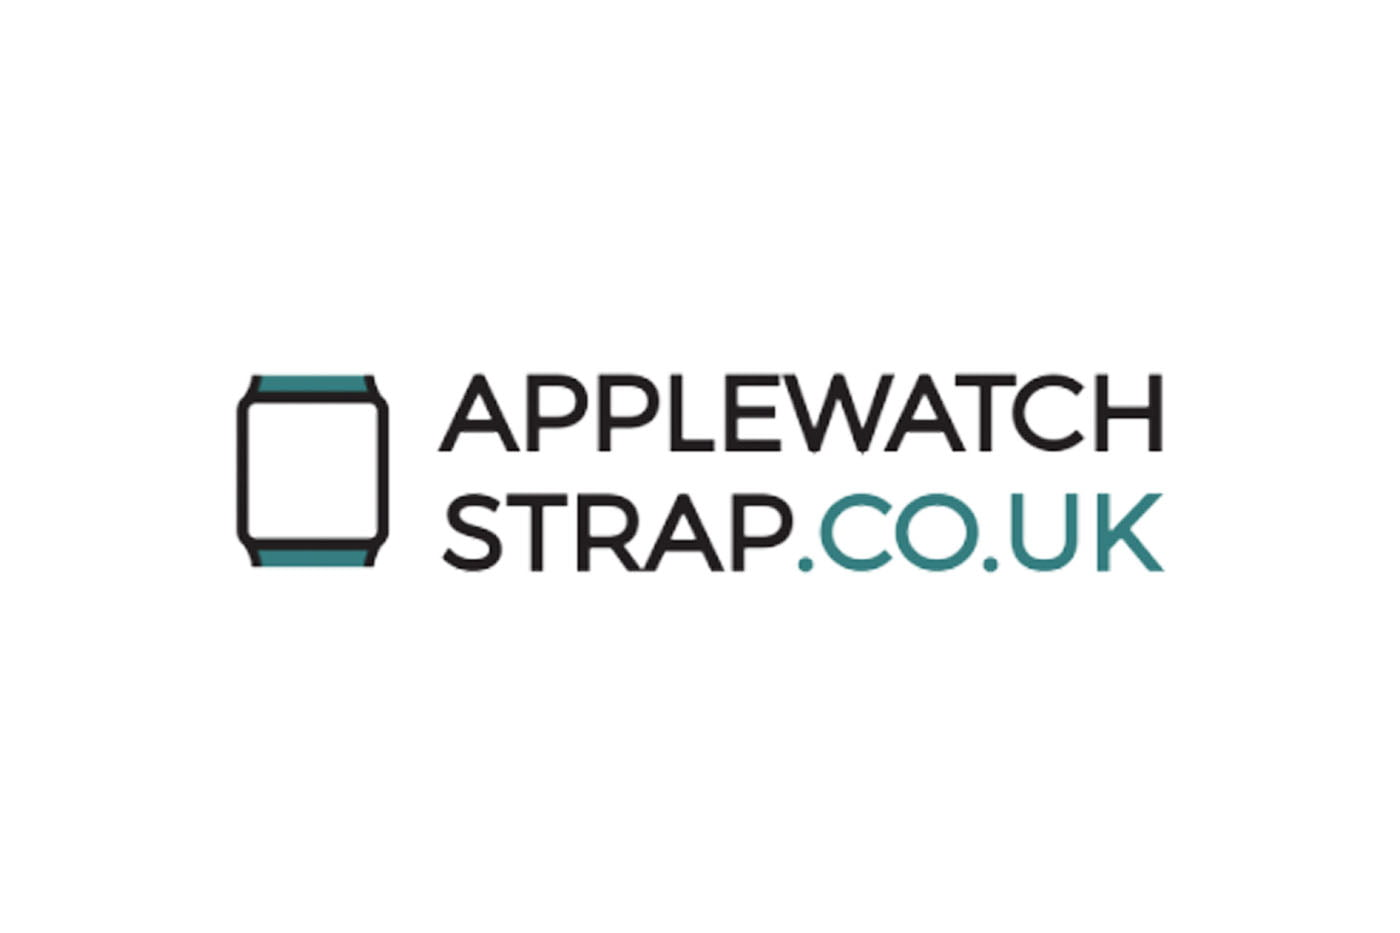 Luxury Apple Watch Straps at an Affordable Price